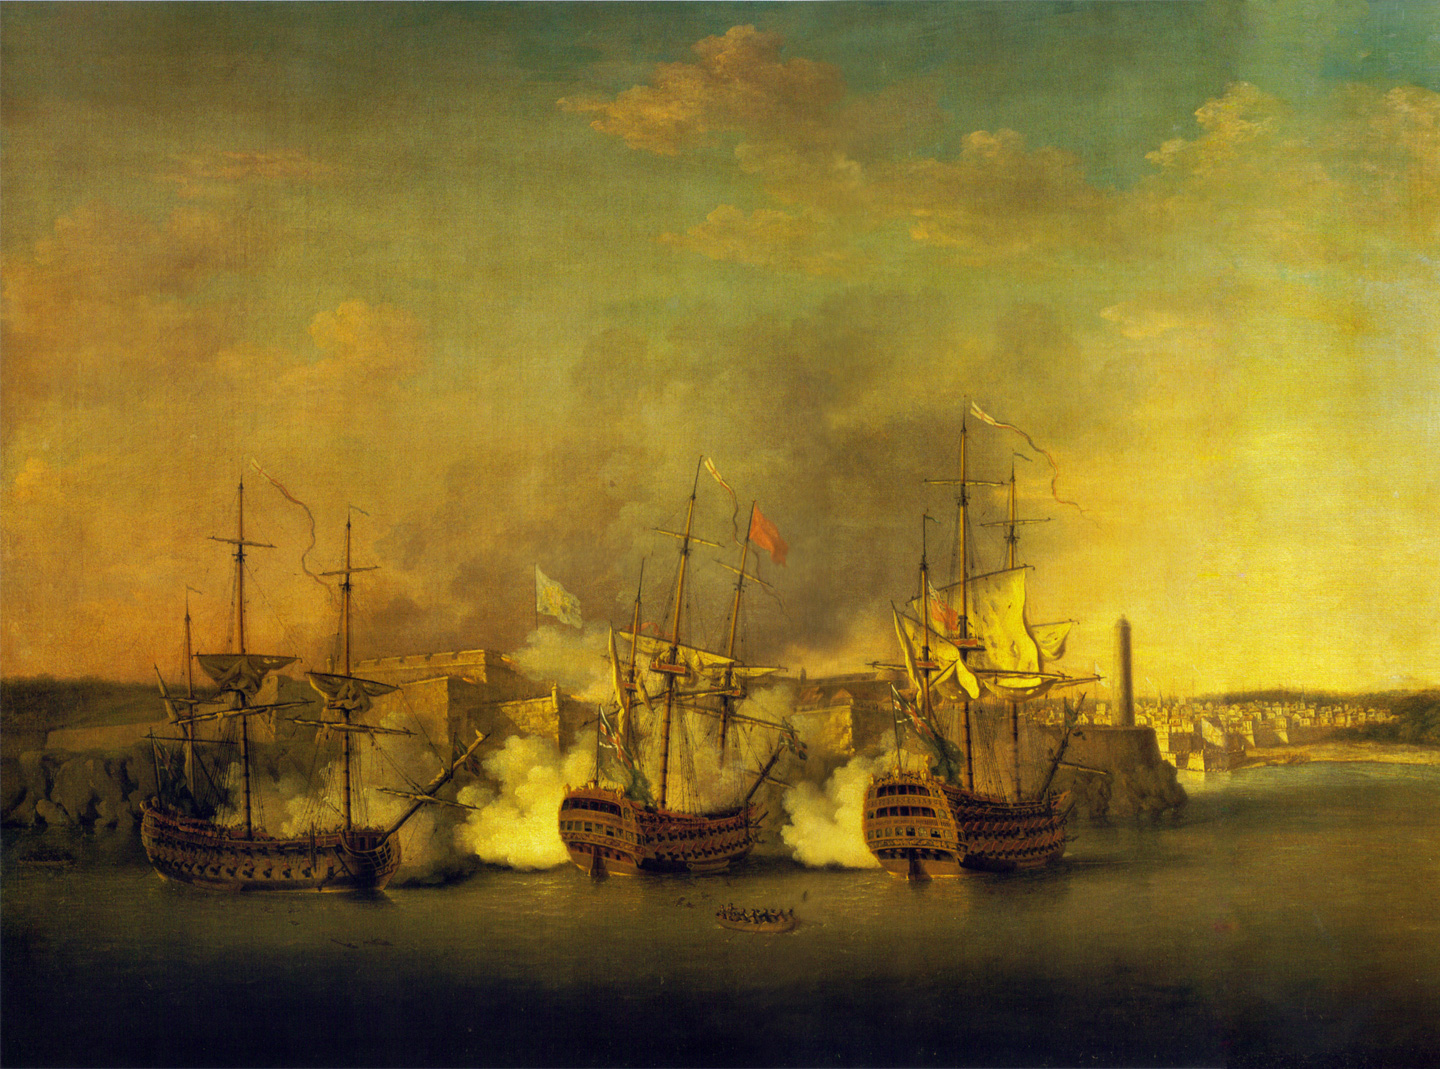 bombardment-of-the-morro-castle-1-july-1